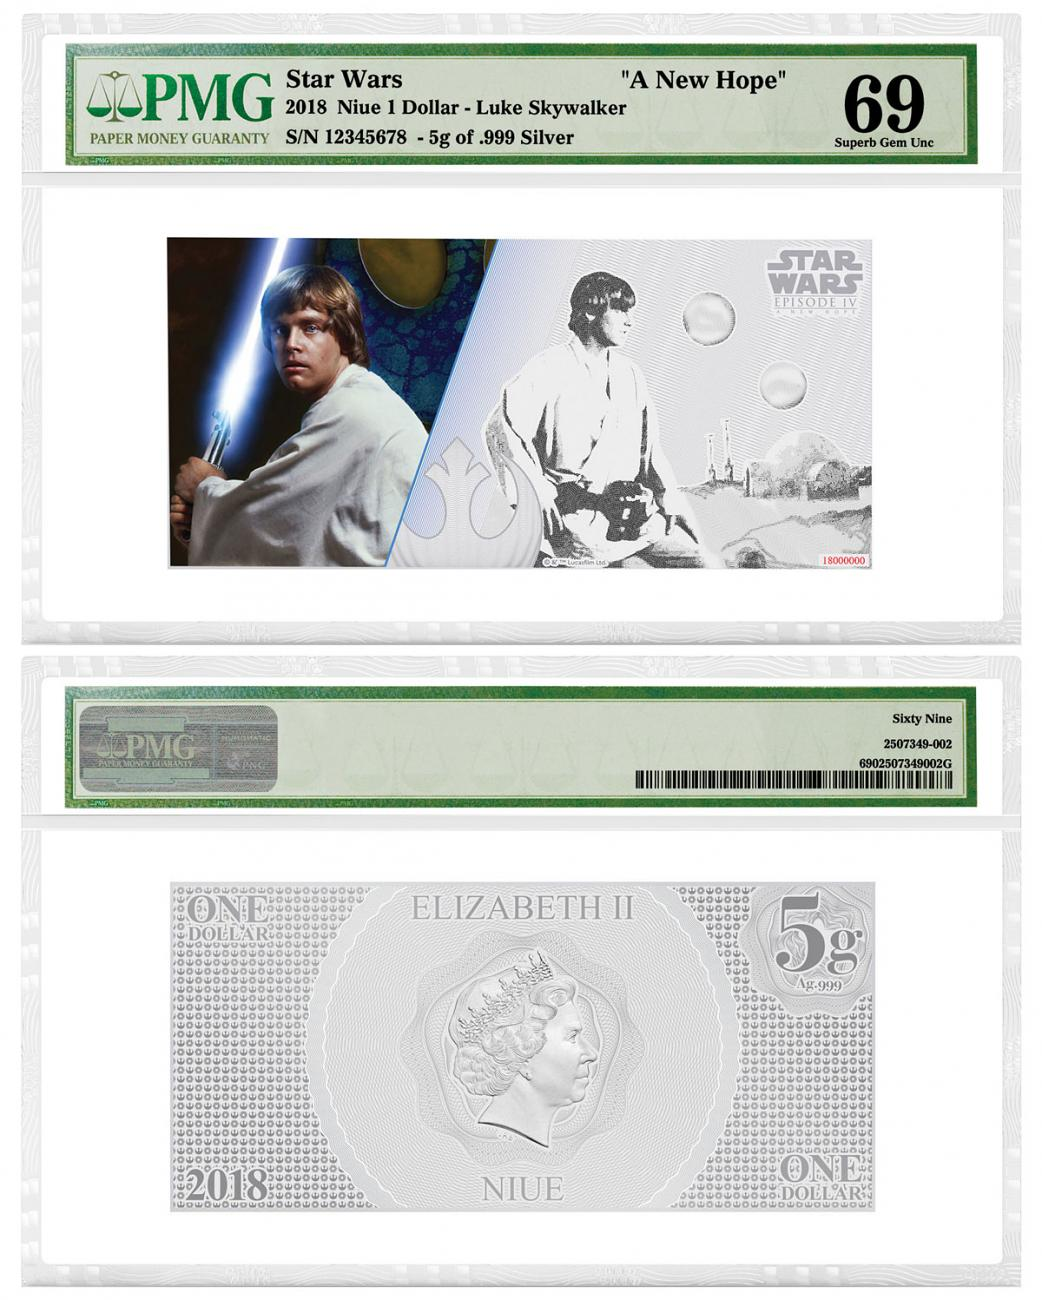 2018 Niue Star Wars: A New Hope - Luke Skywalker Foil Note 5 g Silver Colorized $1 Coin PMG GEM Unc 69